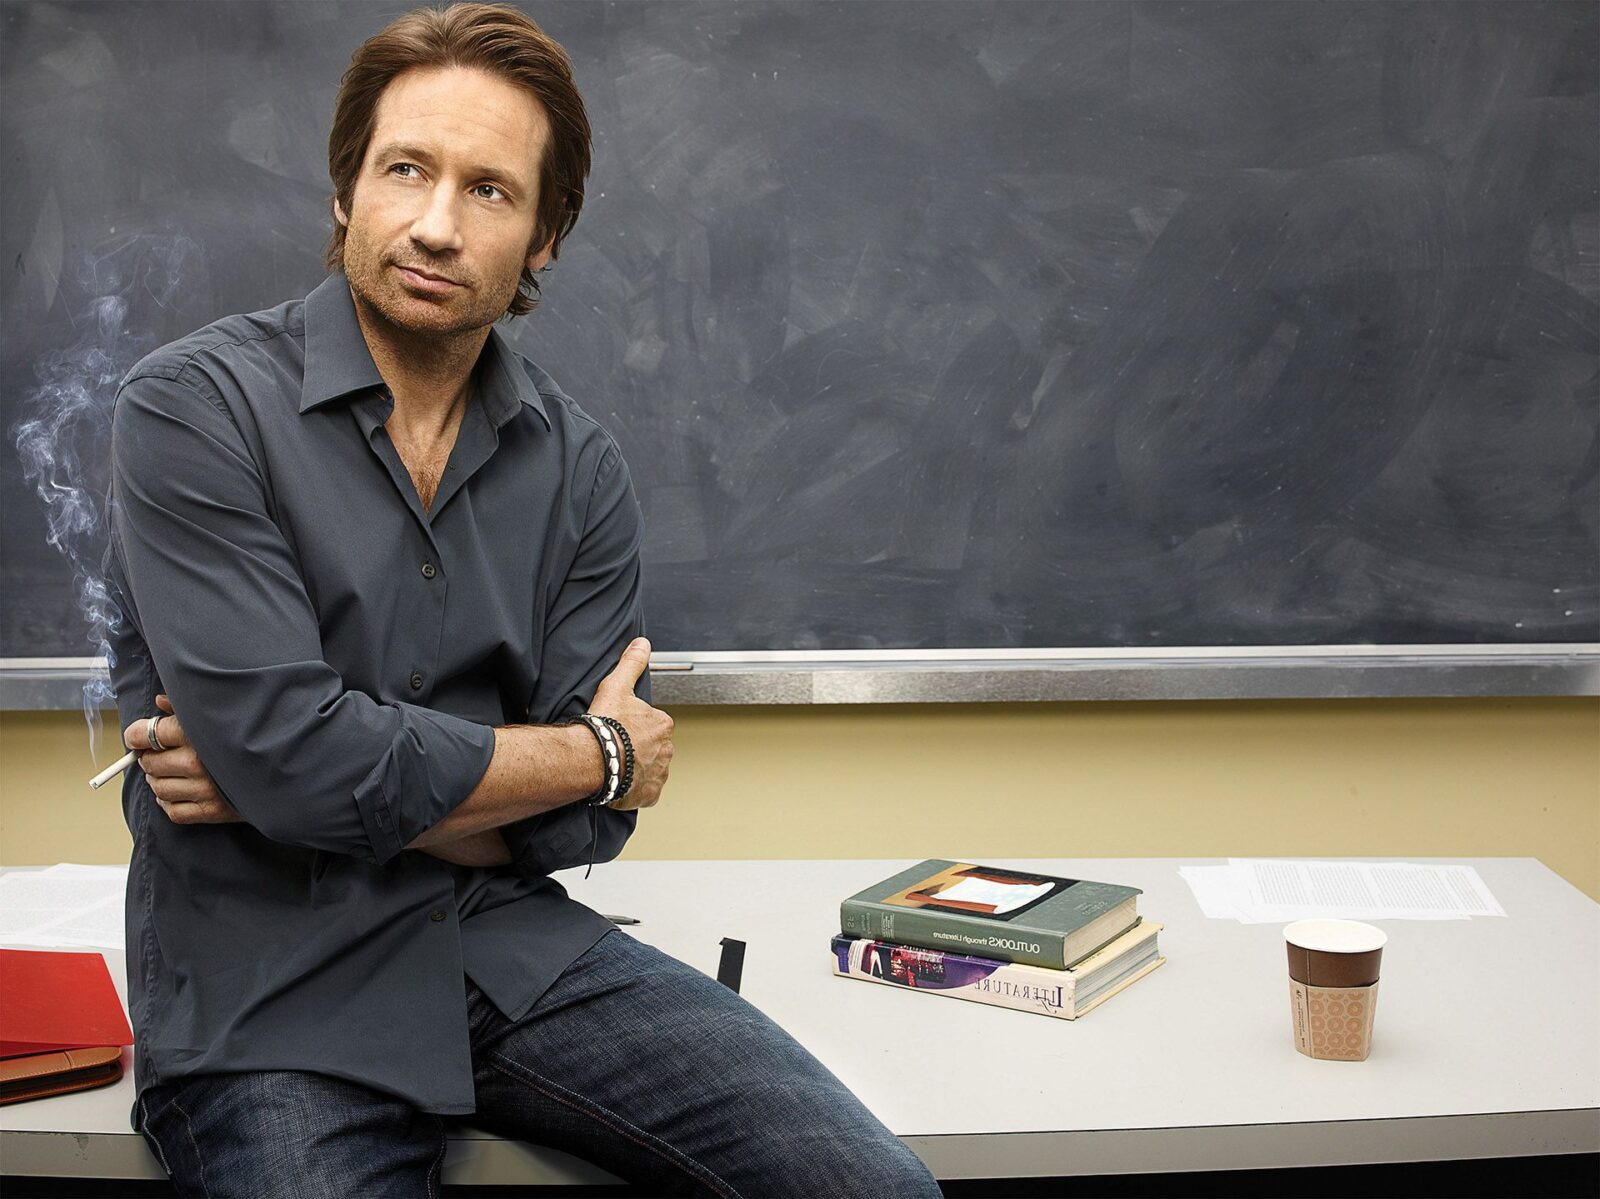 Best CALIFORNICATION David William Duchovny wallpapers backgrounds